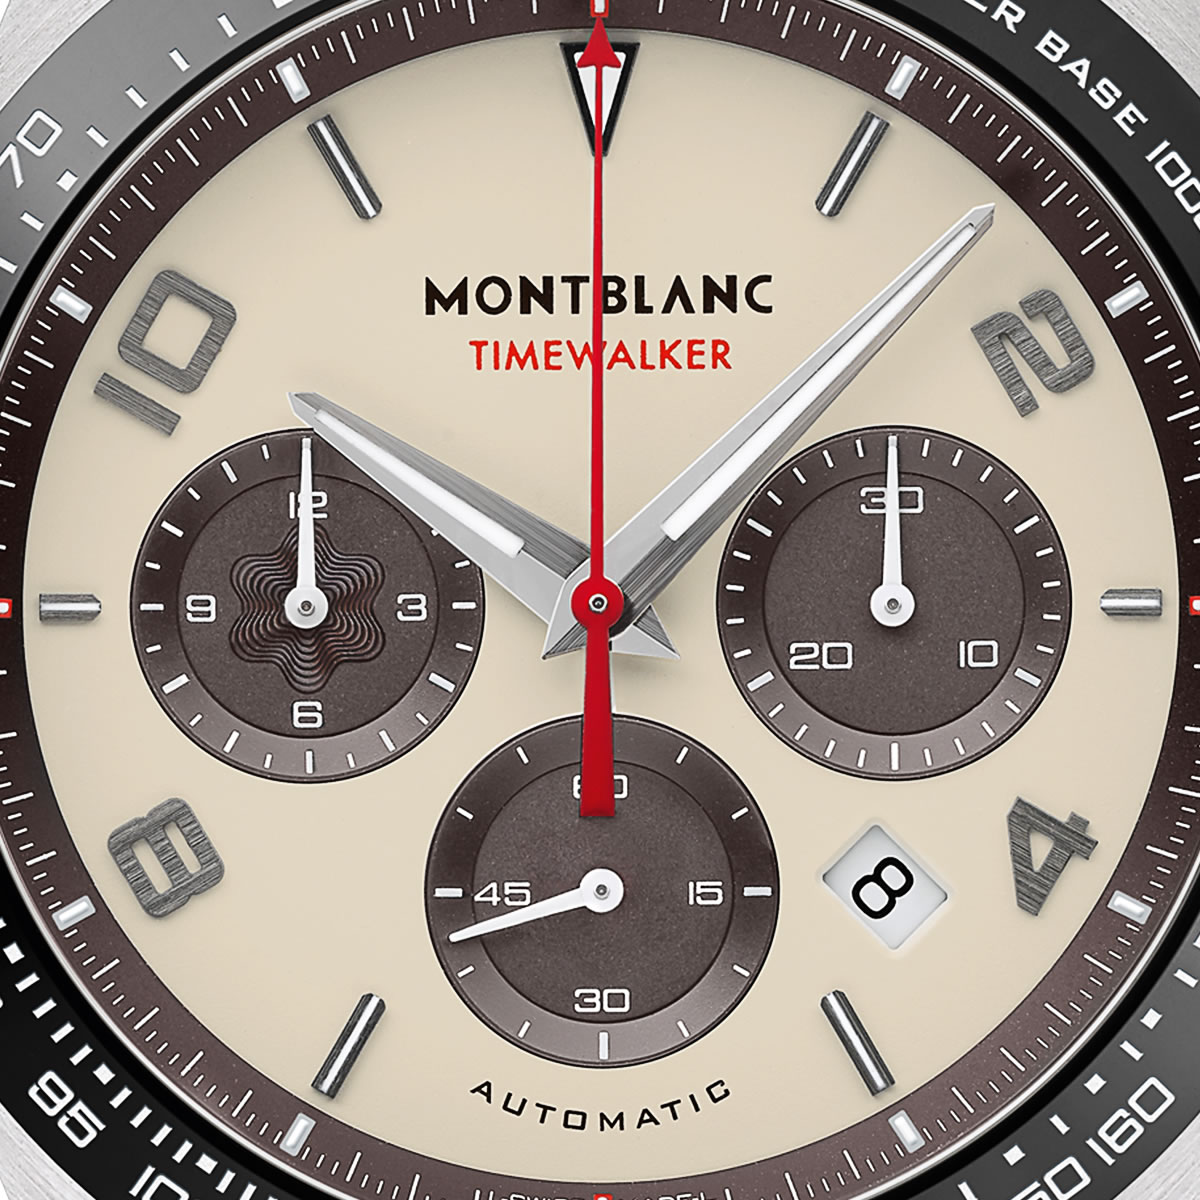 montblanc-timewalker-goodwood-festival-of-speed-2018-limited-editions-5-.jpg